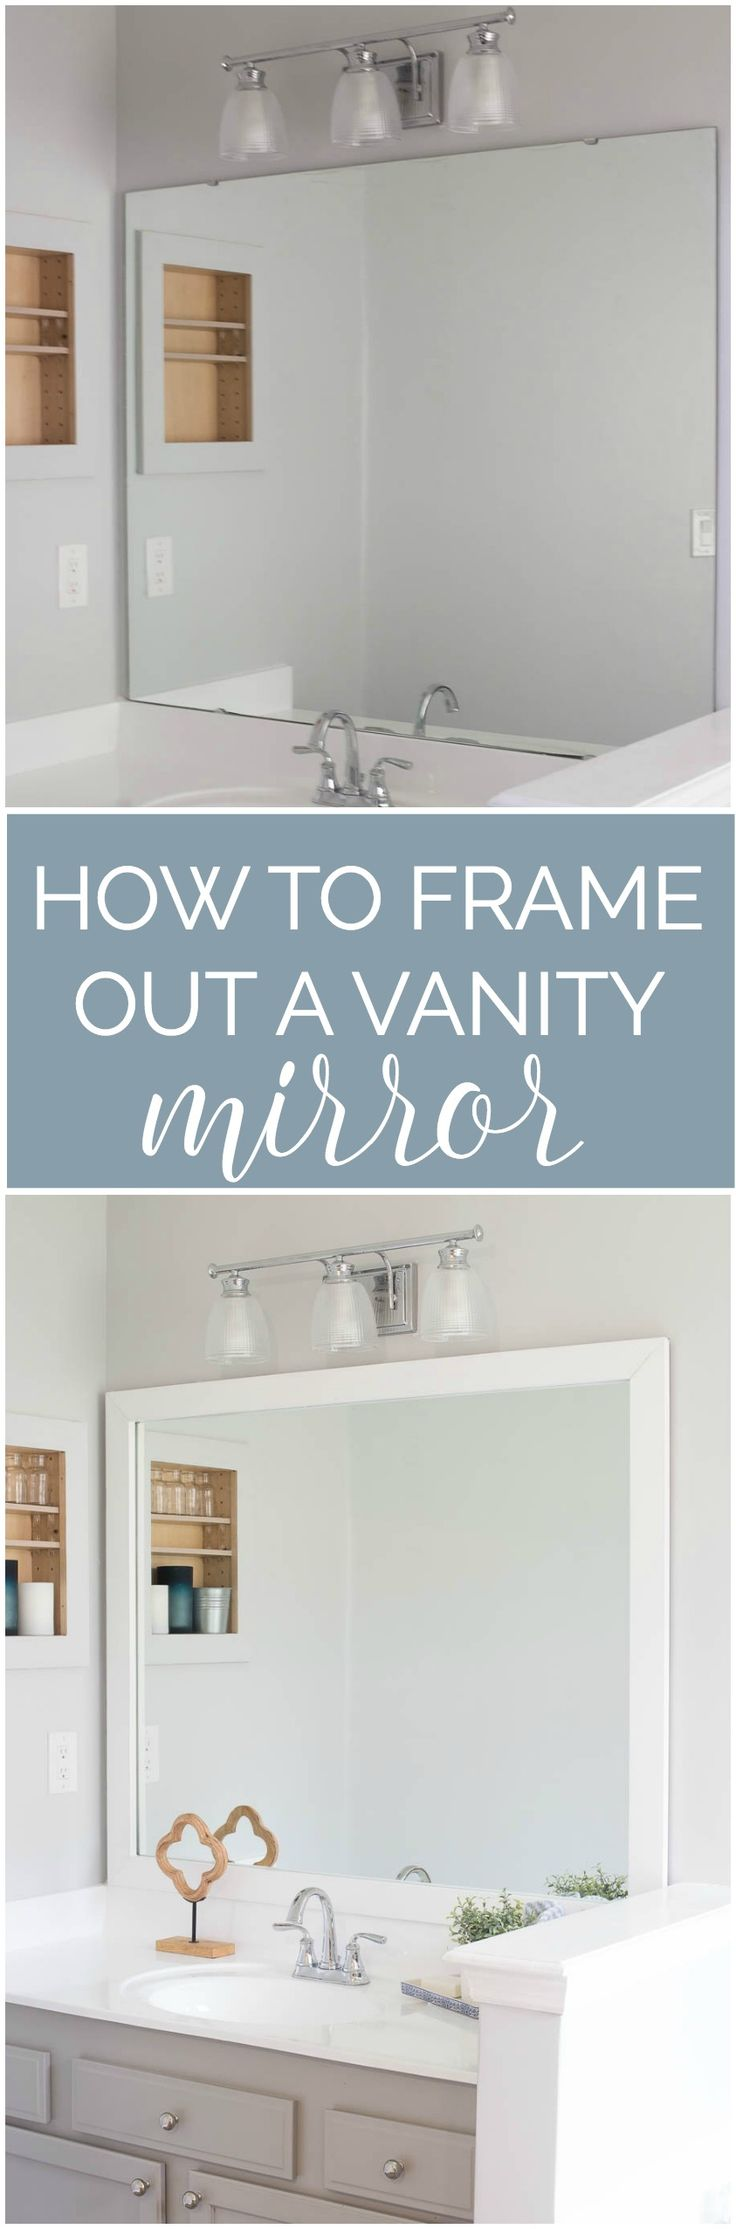 how to frame a bathroom mirror easy diy project vanities tutorials and bathroom mirrors